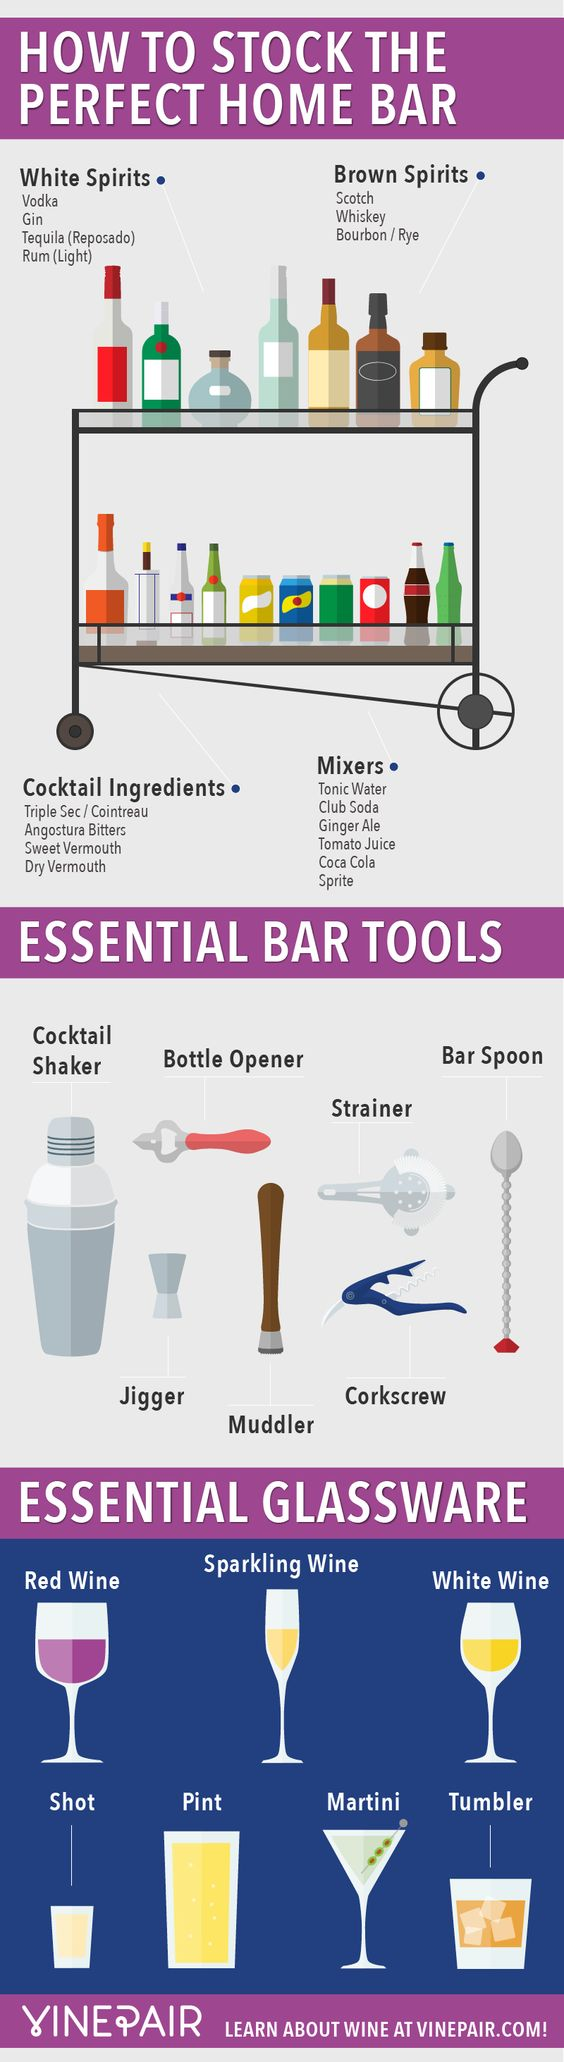 How To Stock The Perfect Home Bar Infographic: